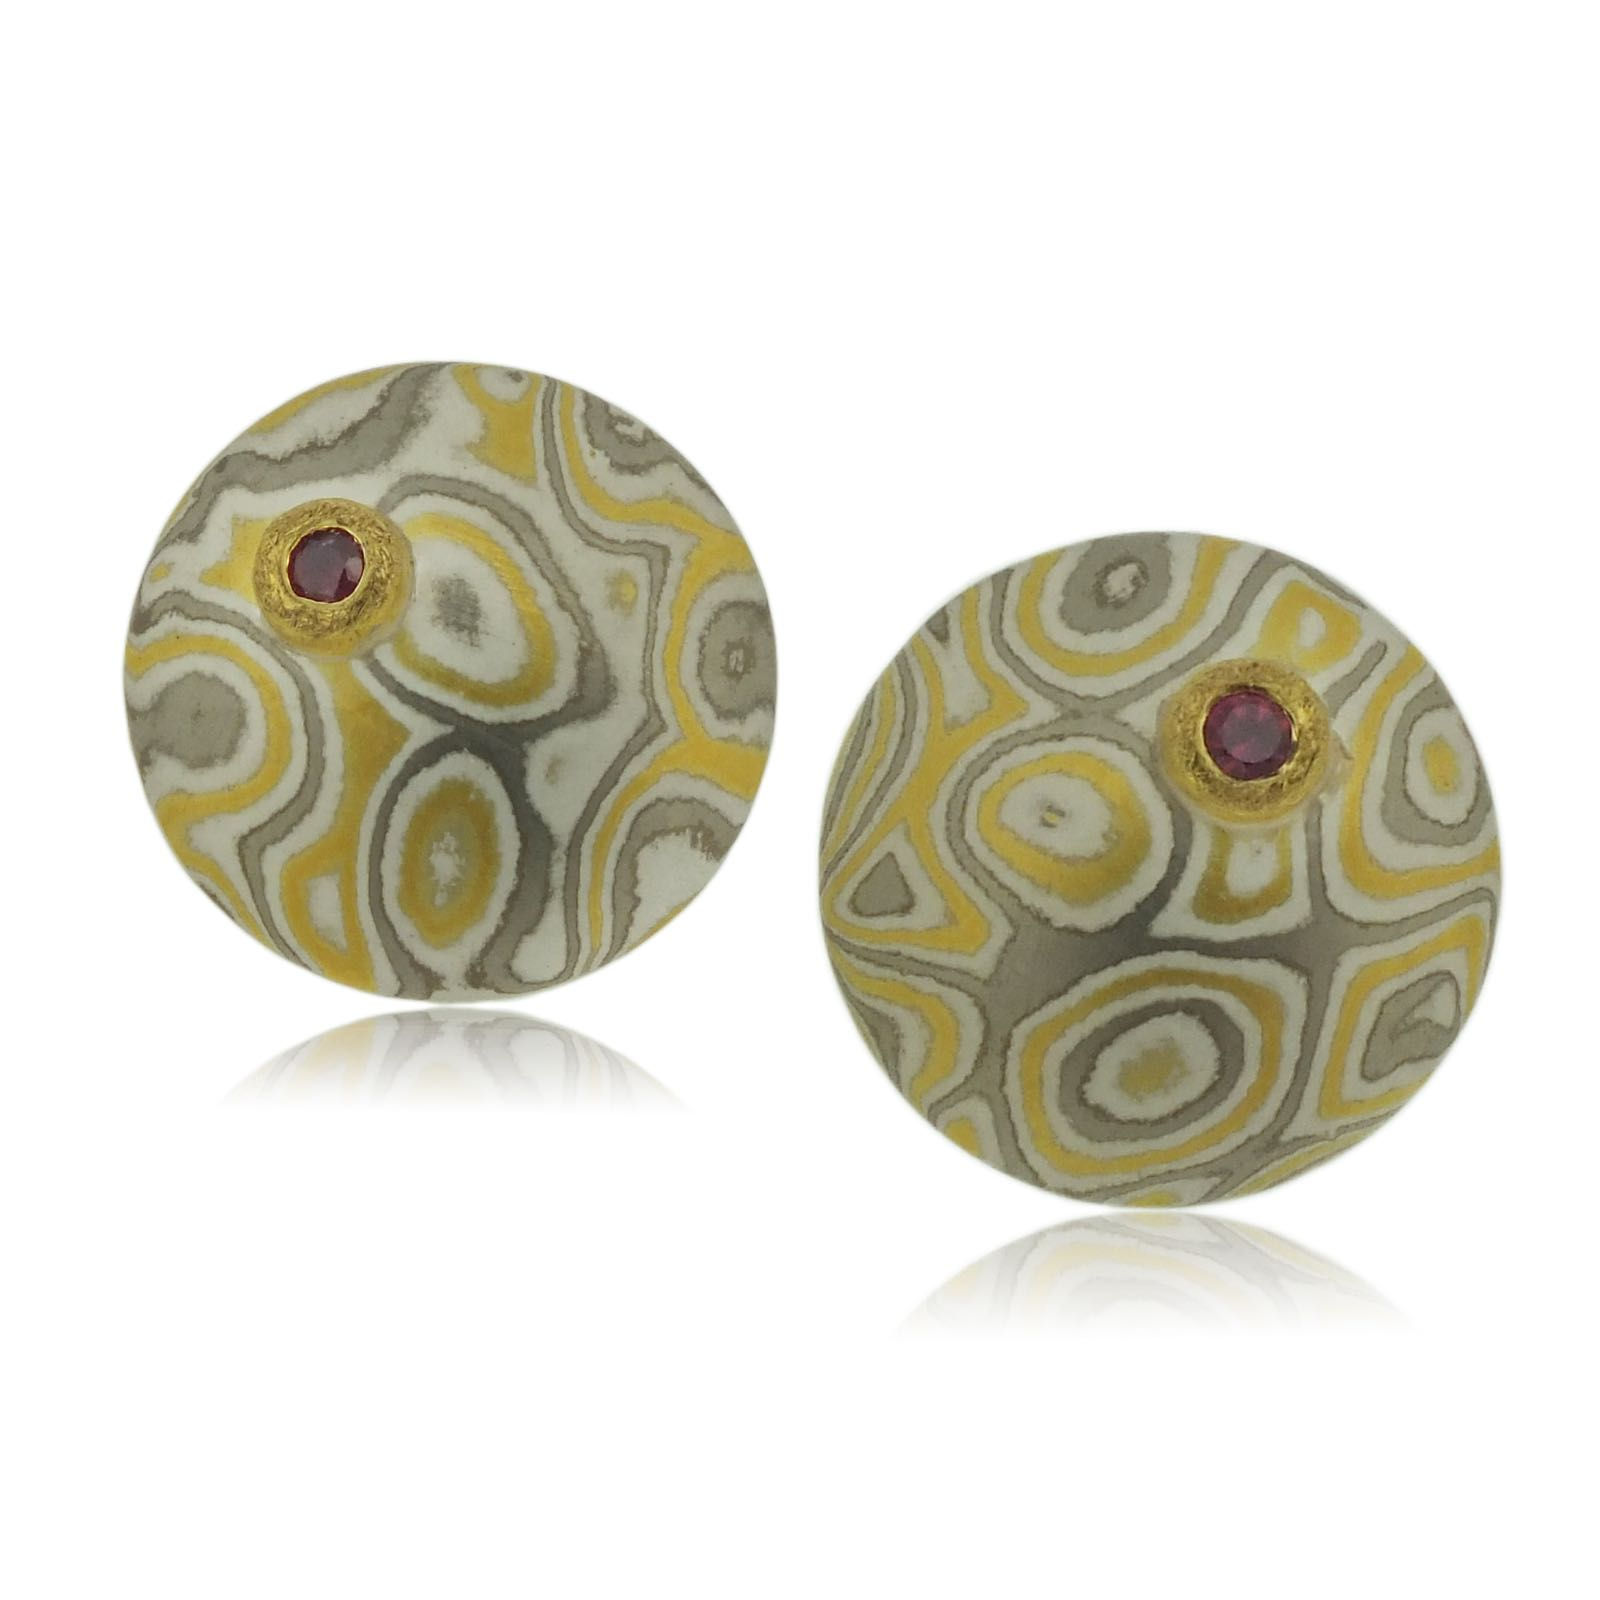 22k gold, 18k white gold and silver mokume gane medium Discus stud earrings with rubies